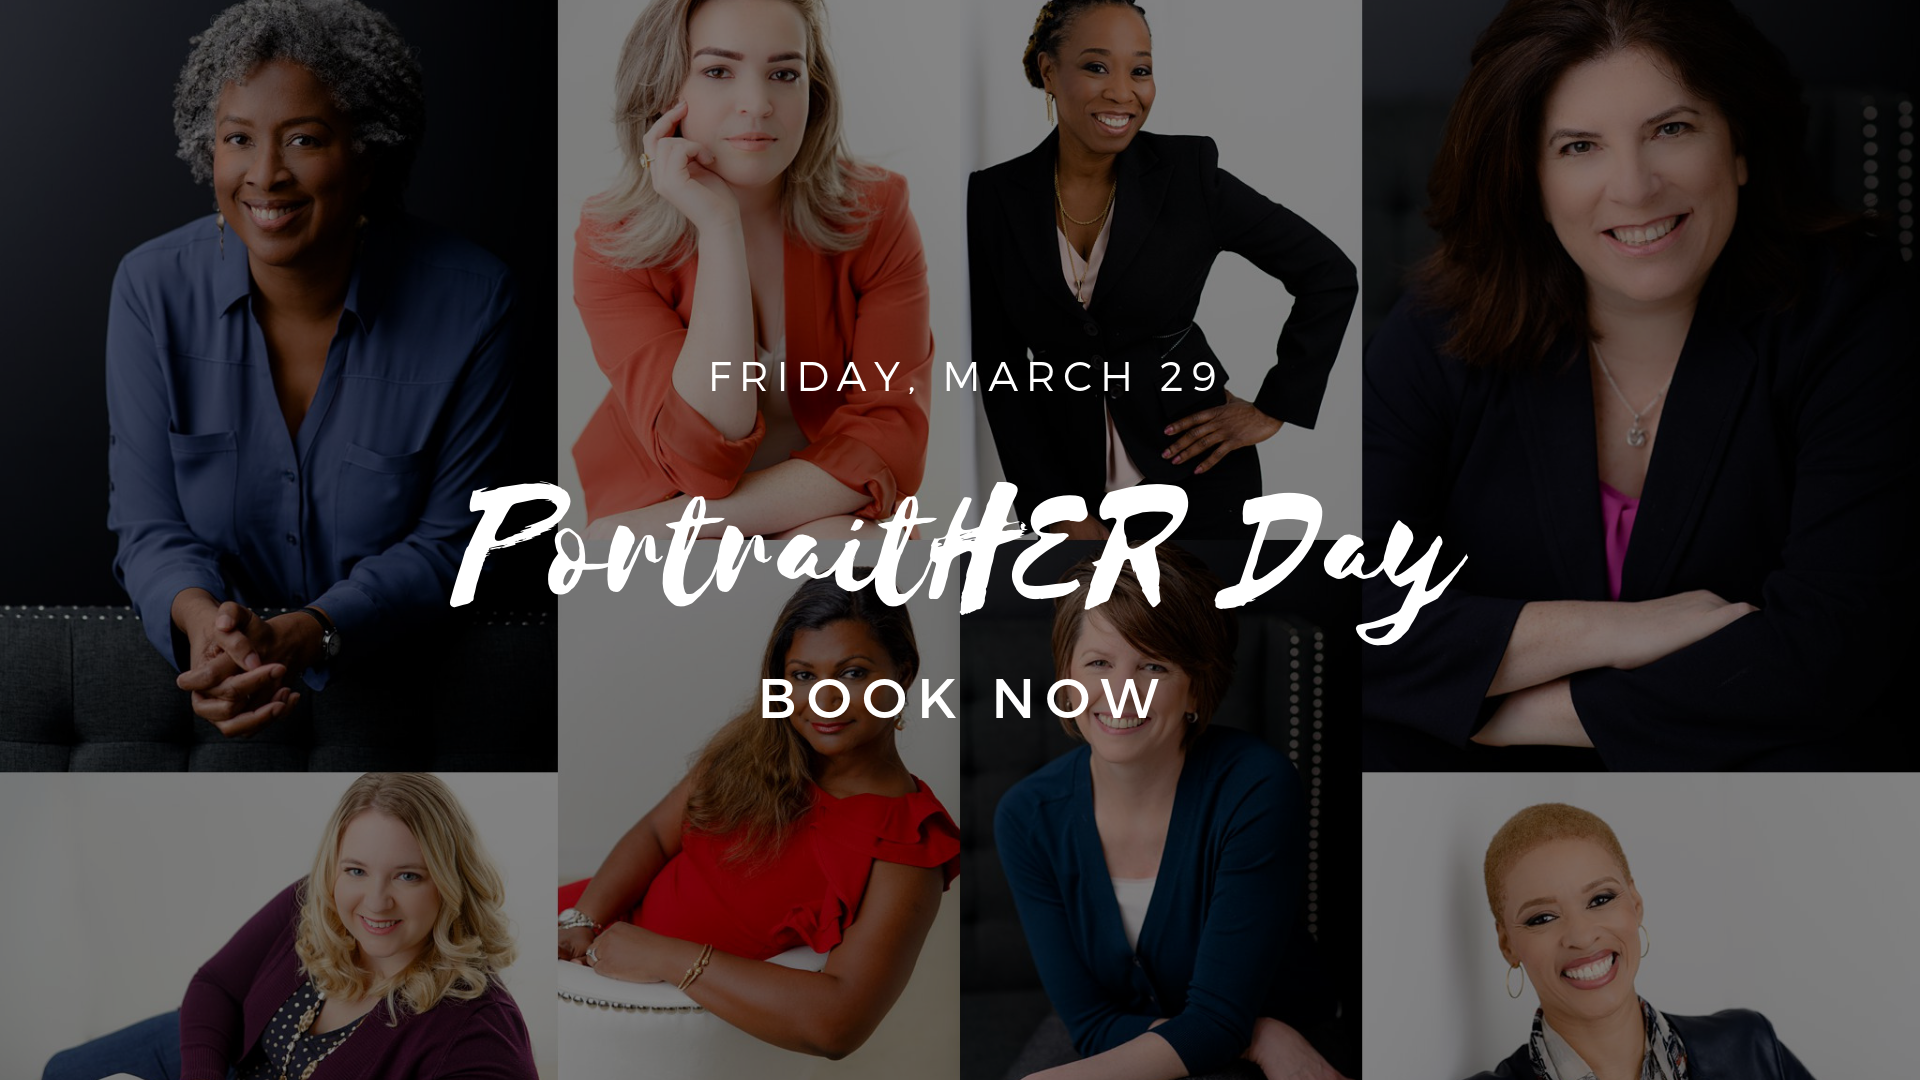 PortraitHER-March2019-wide.png